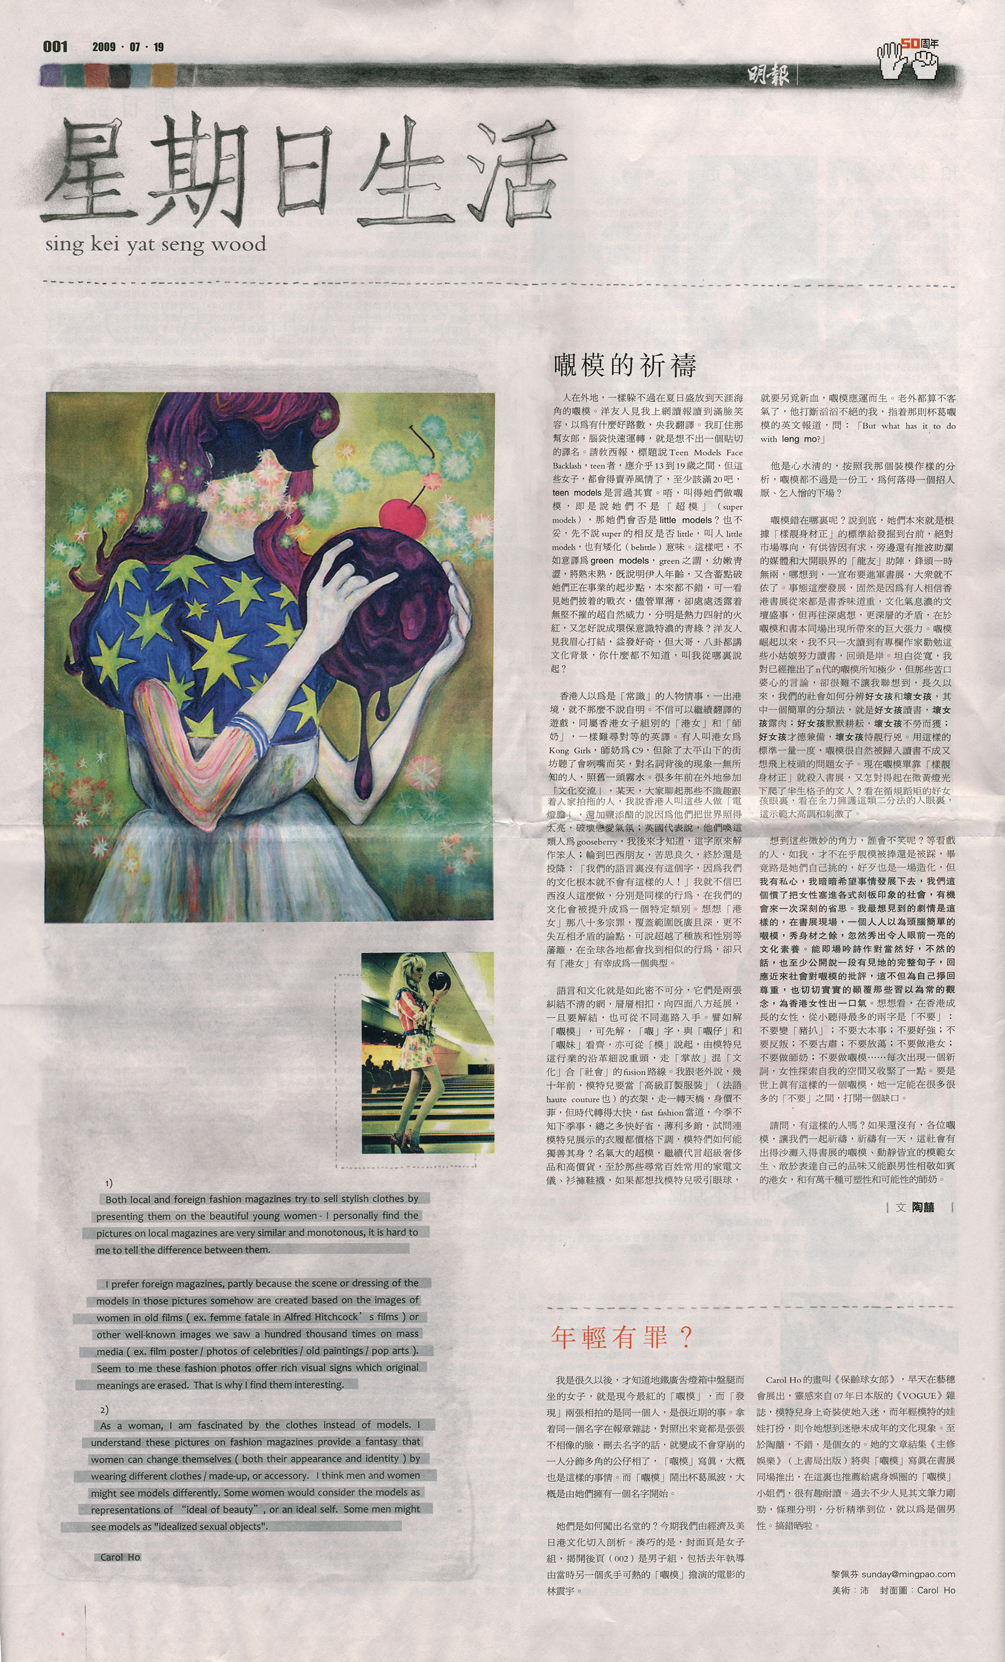 MINGPAO NEWSPAPER, JULY 19 2009